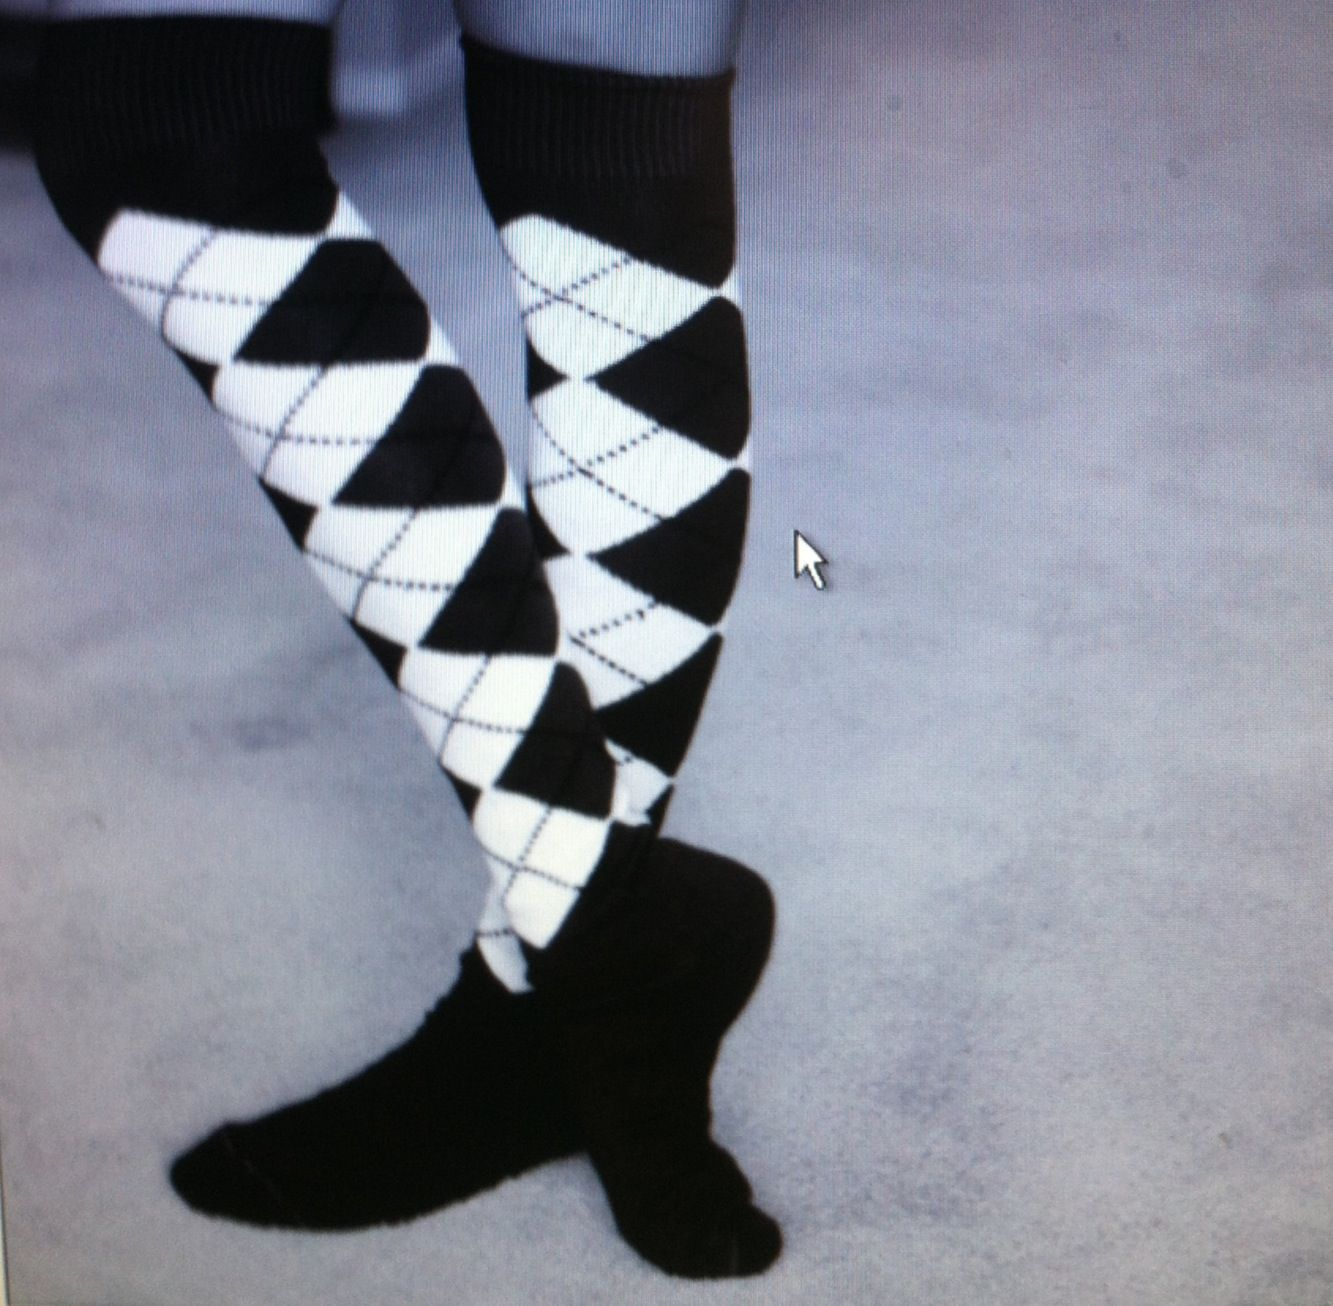 Knicker golf socks for your high boots my style pinterest high